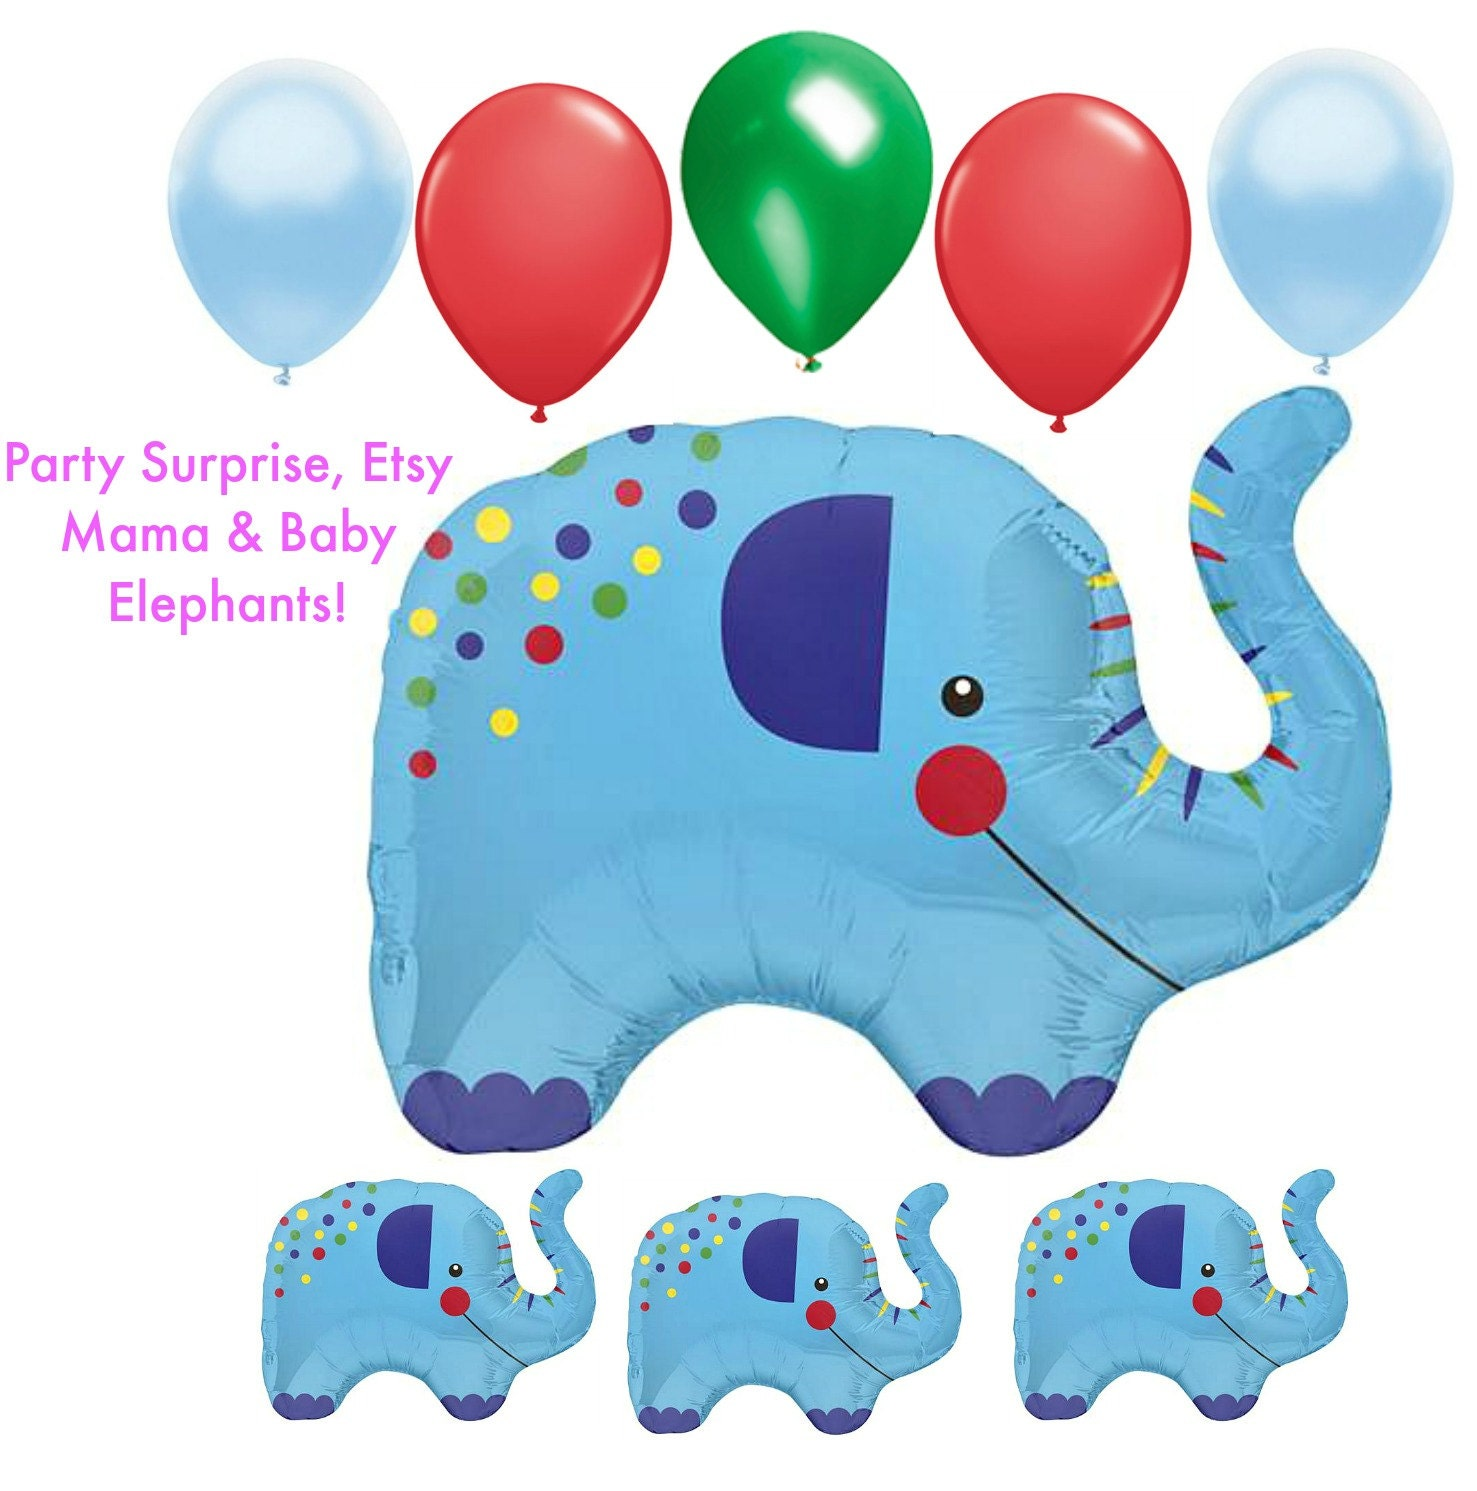 elephant balloons mama and 3 babies baby shower by partysurprise